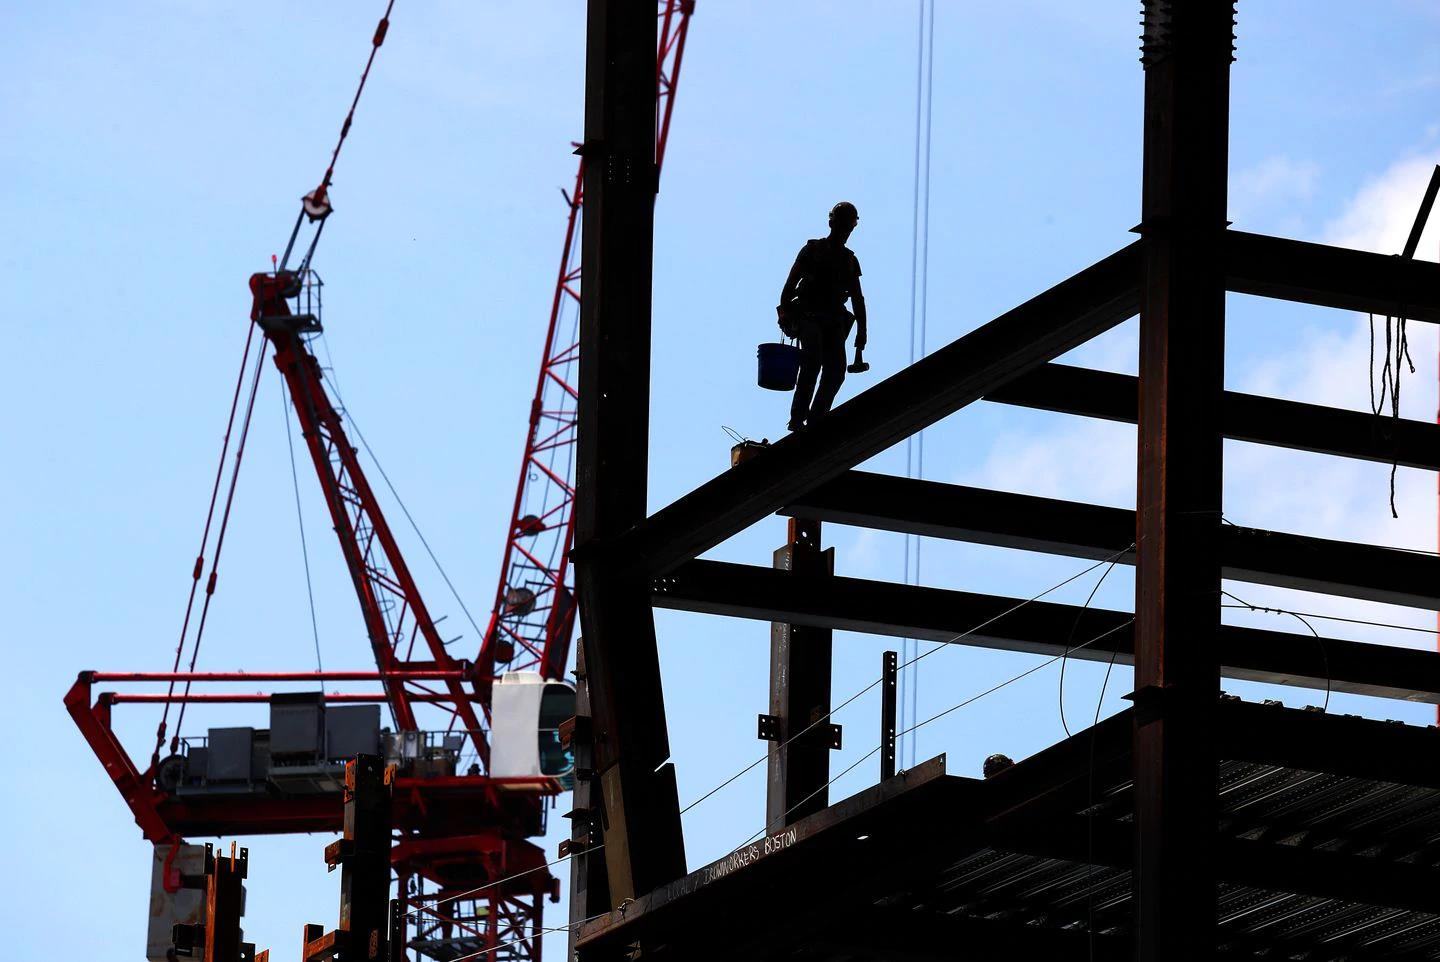 Reducing addiction requires tackling workplace injuries